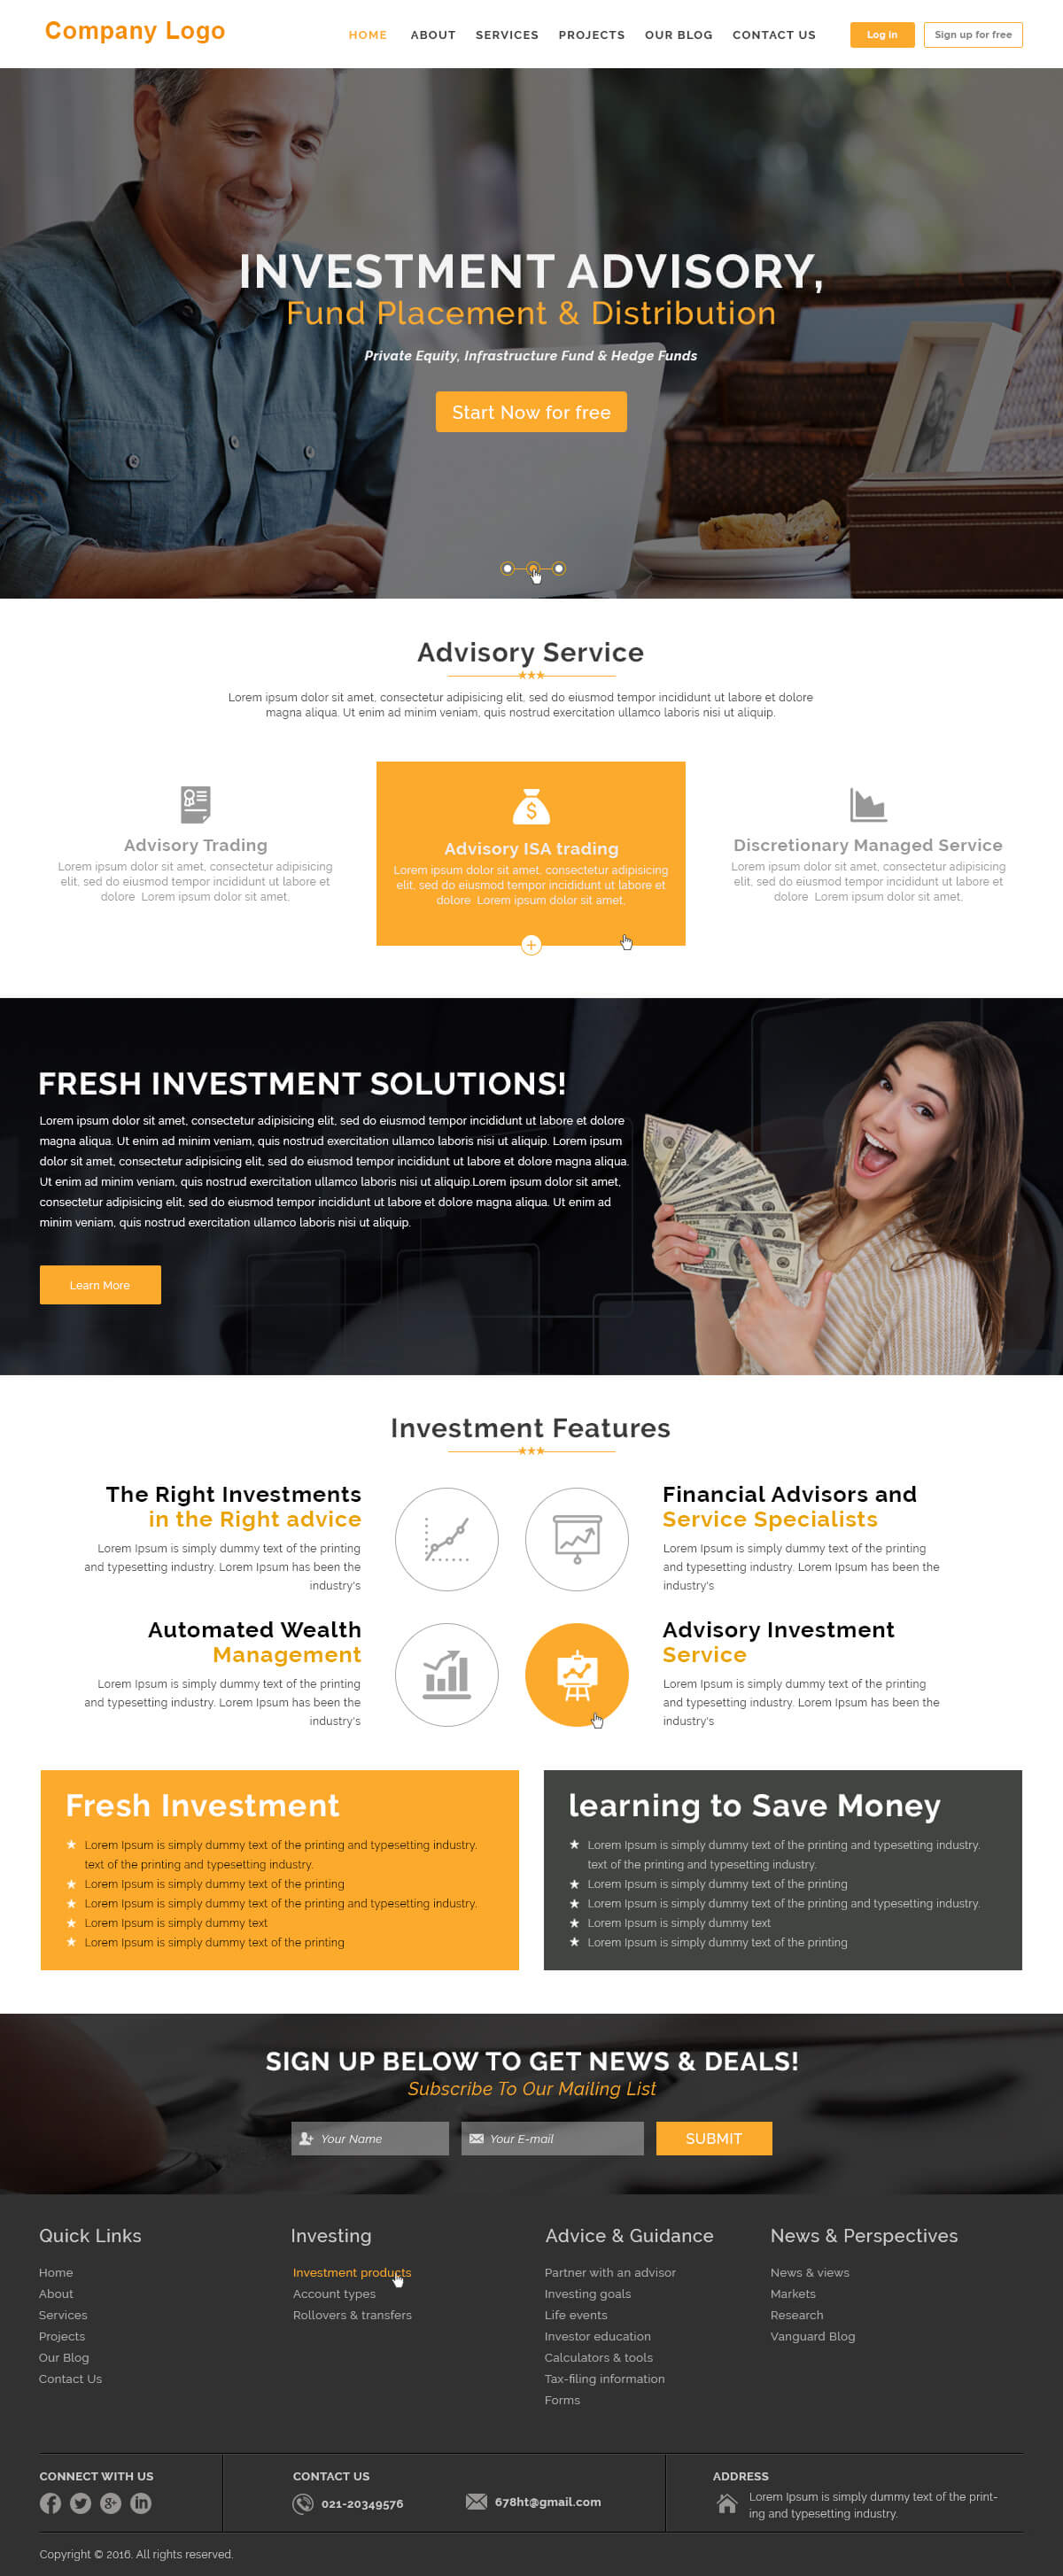 investment company website templates ved web services. Black Bedroom Furniture Sets. Home Design Ideas